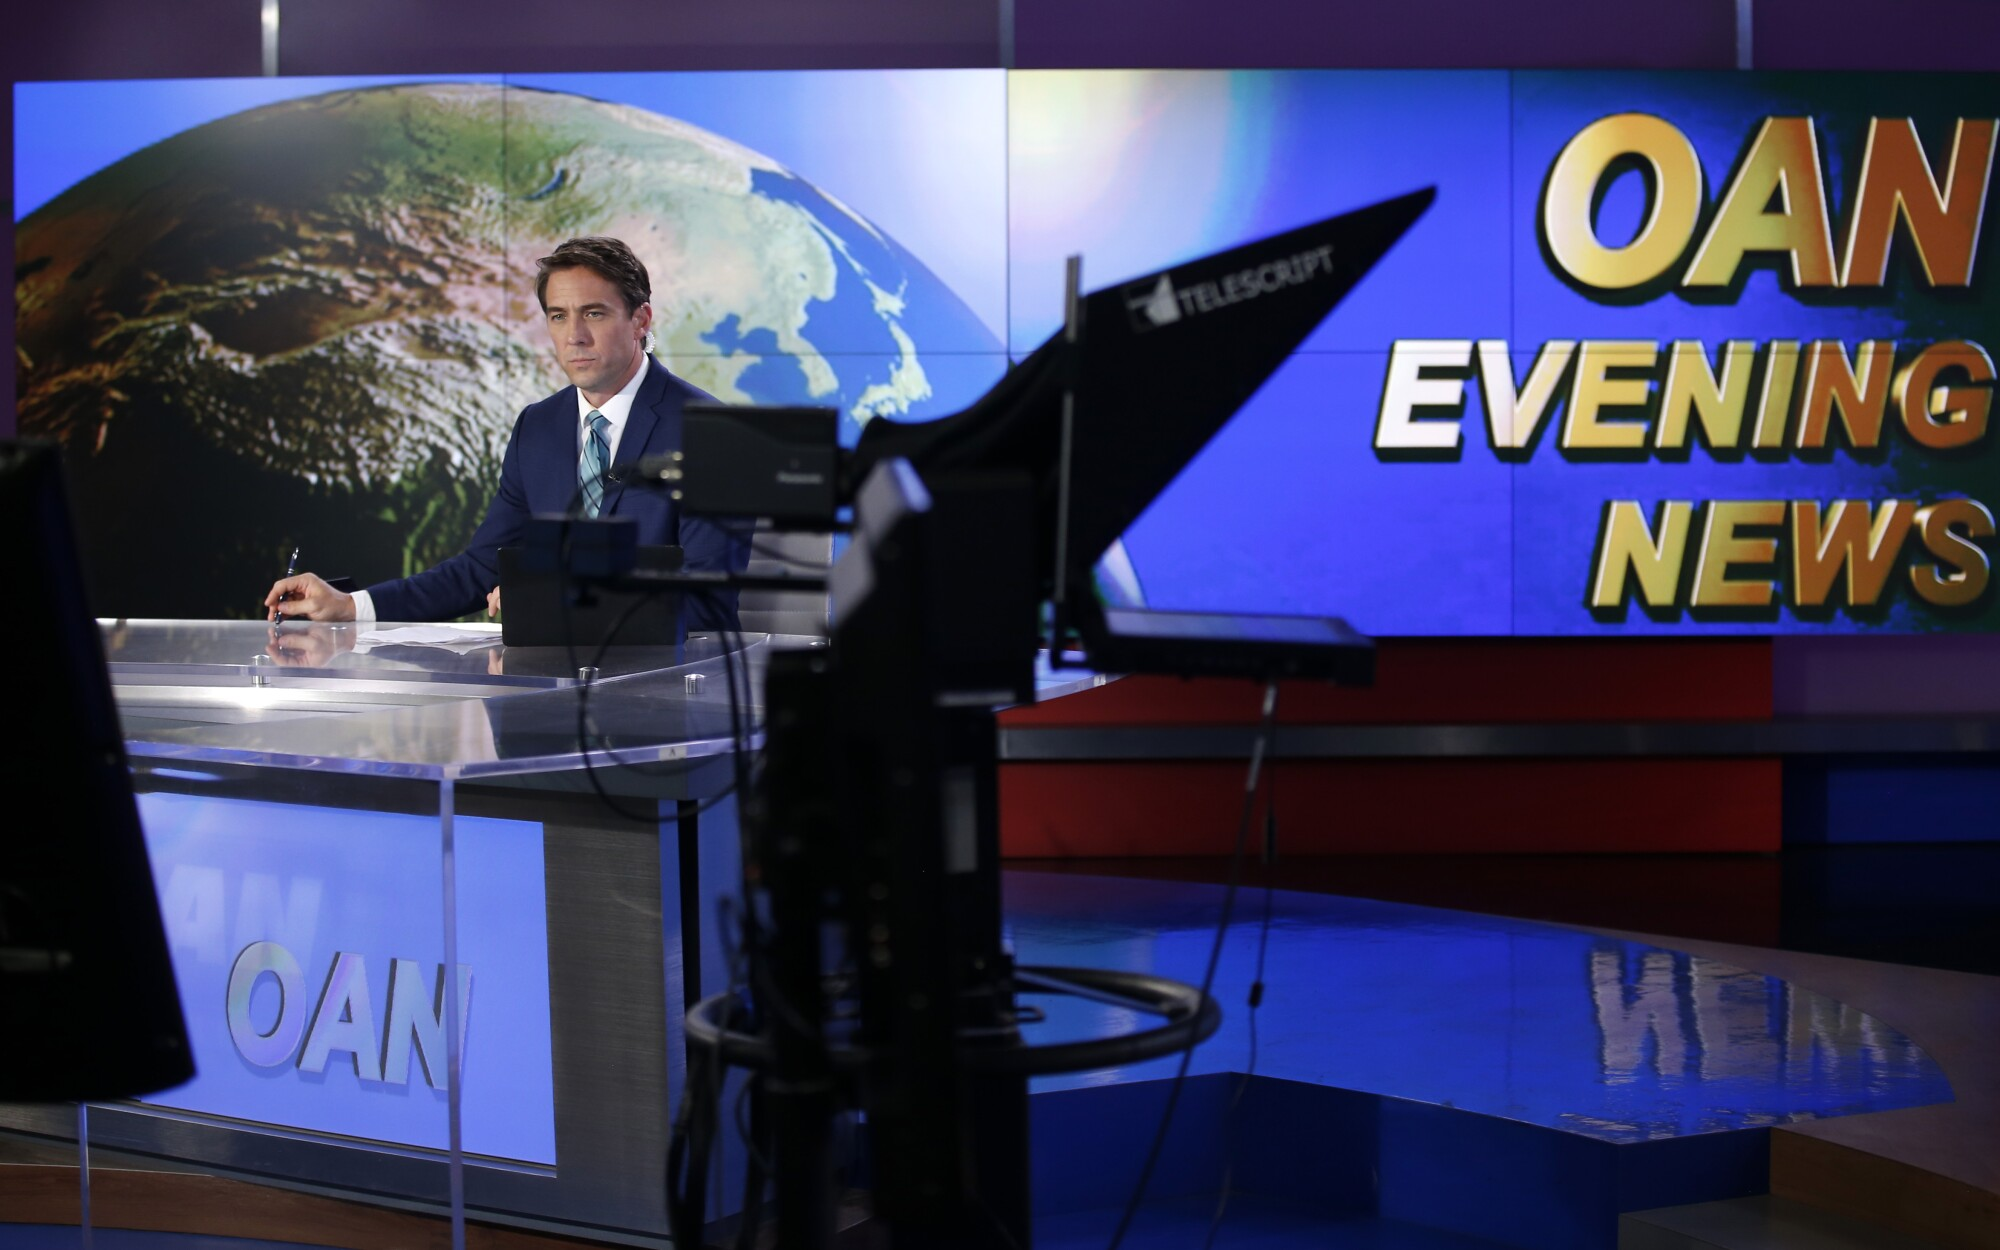 Patrick Hussion waits for a break while hosting an evening news segment at San Diego-based One America News on Sept. 5, 2019.